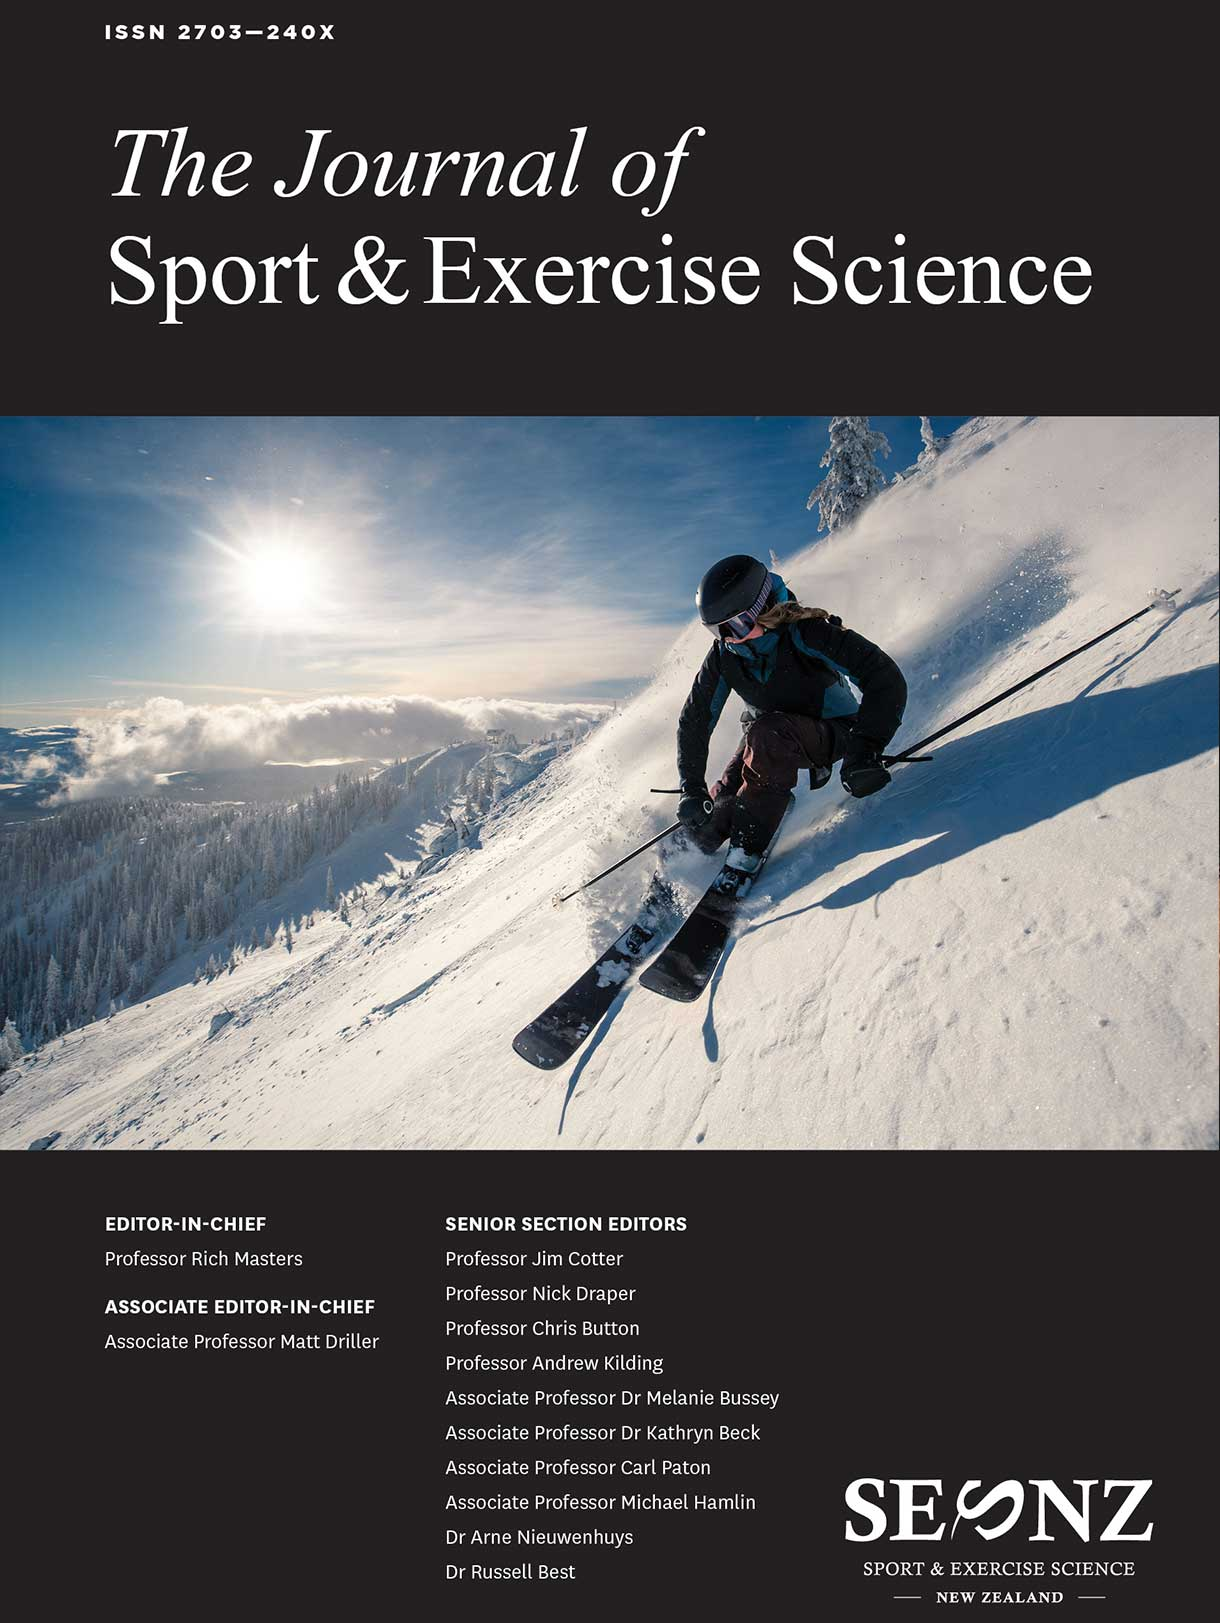 2020 – VOLUME 4, ISSUE 3 PROCEEDINGS OF THE 2020 ANNUAL CONFERENCE OF SPORT AND EXERCISE SCIENCE NEW ZEALAND